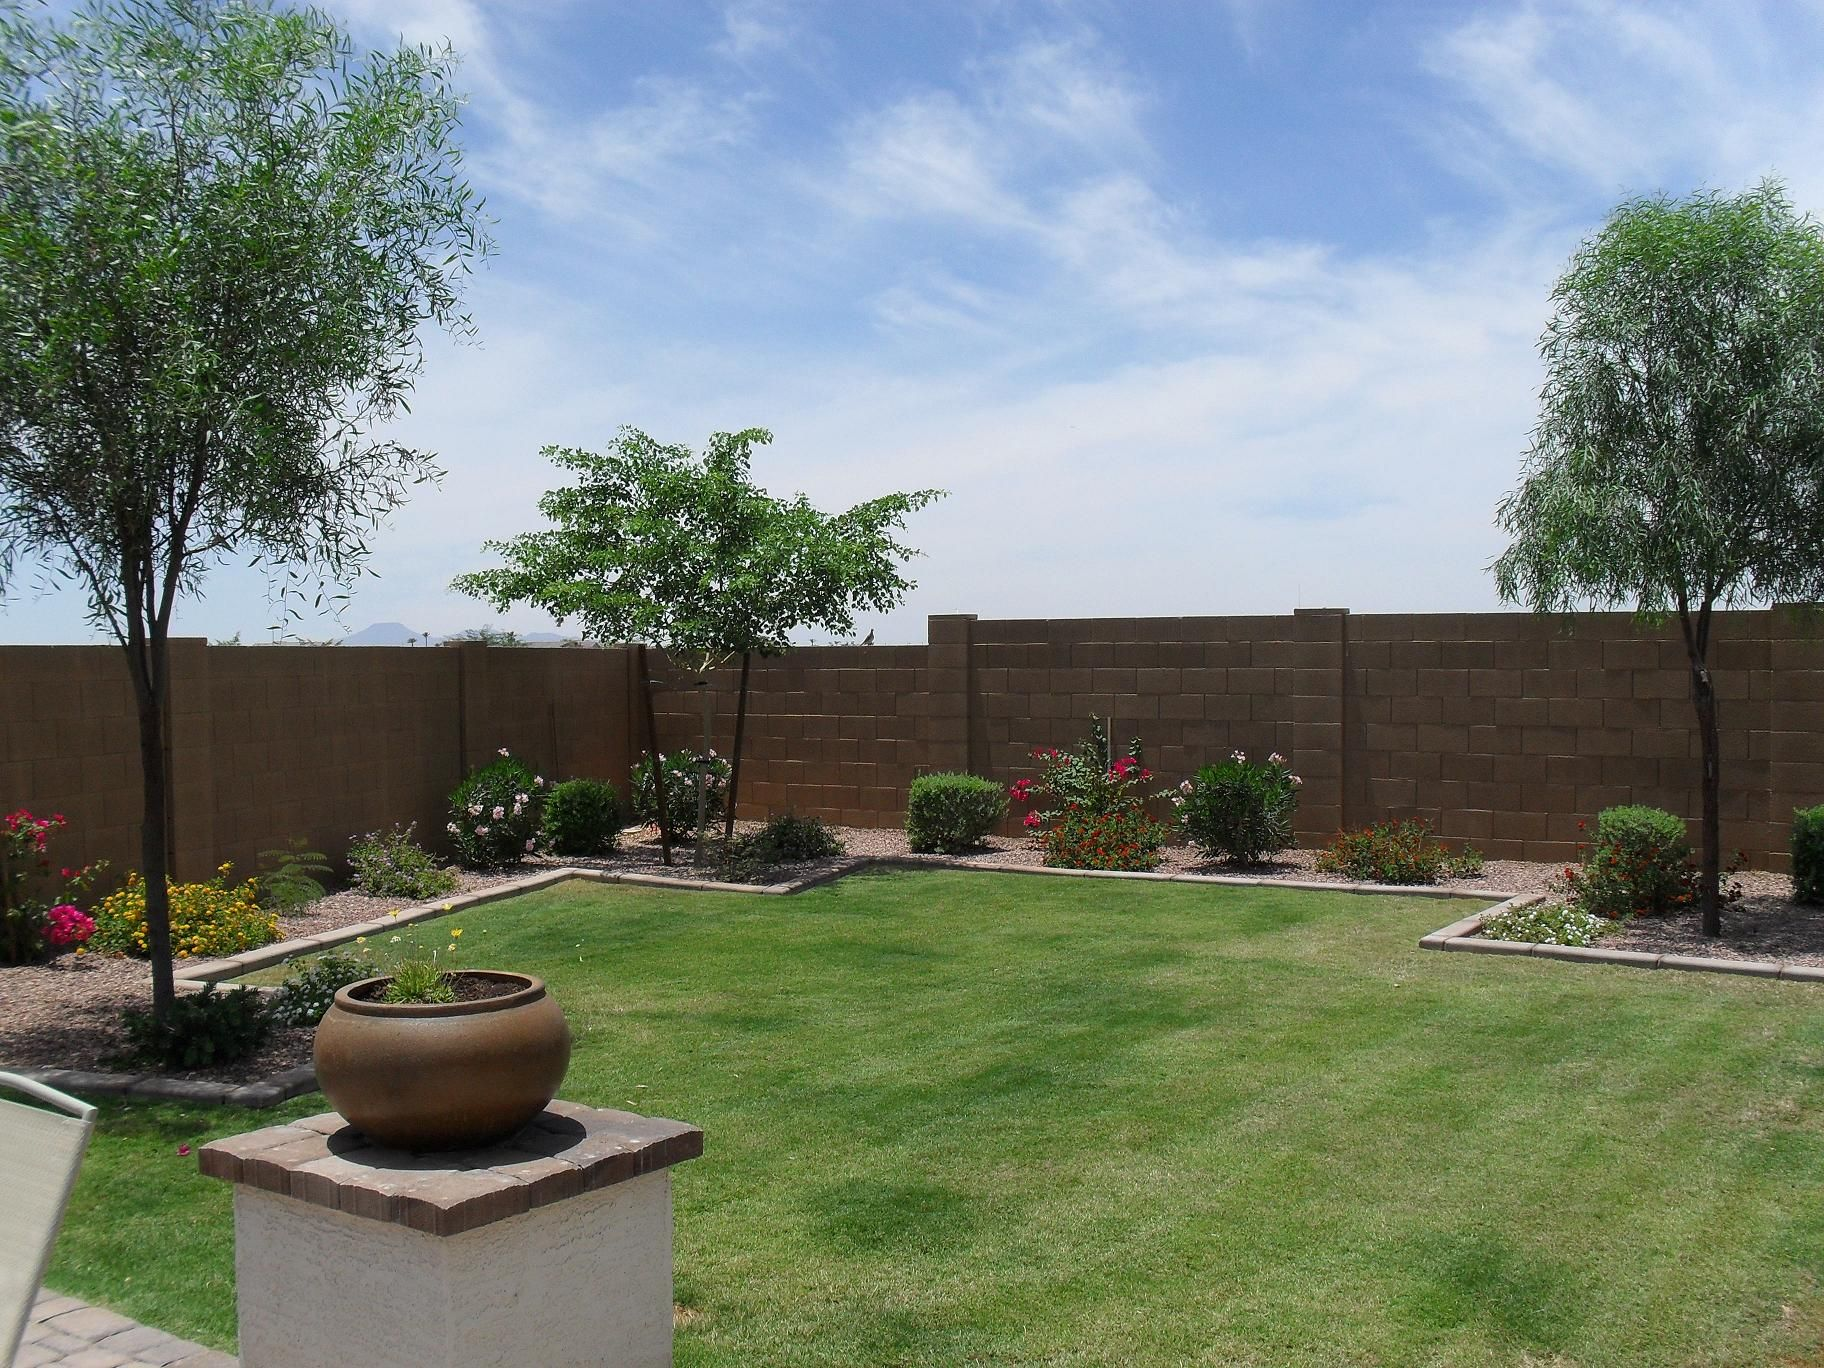 Here Some Of Magnificent Backyard Design Ideas Collections To Try For Your Garden Arizona Backyard Backyard Arizona Backyard Landscaping Designs